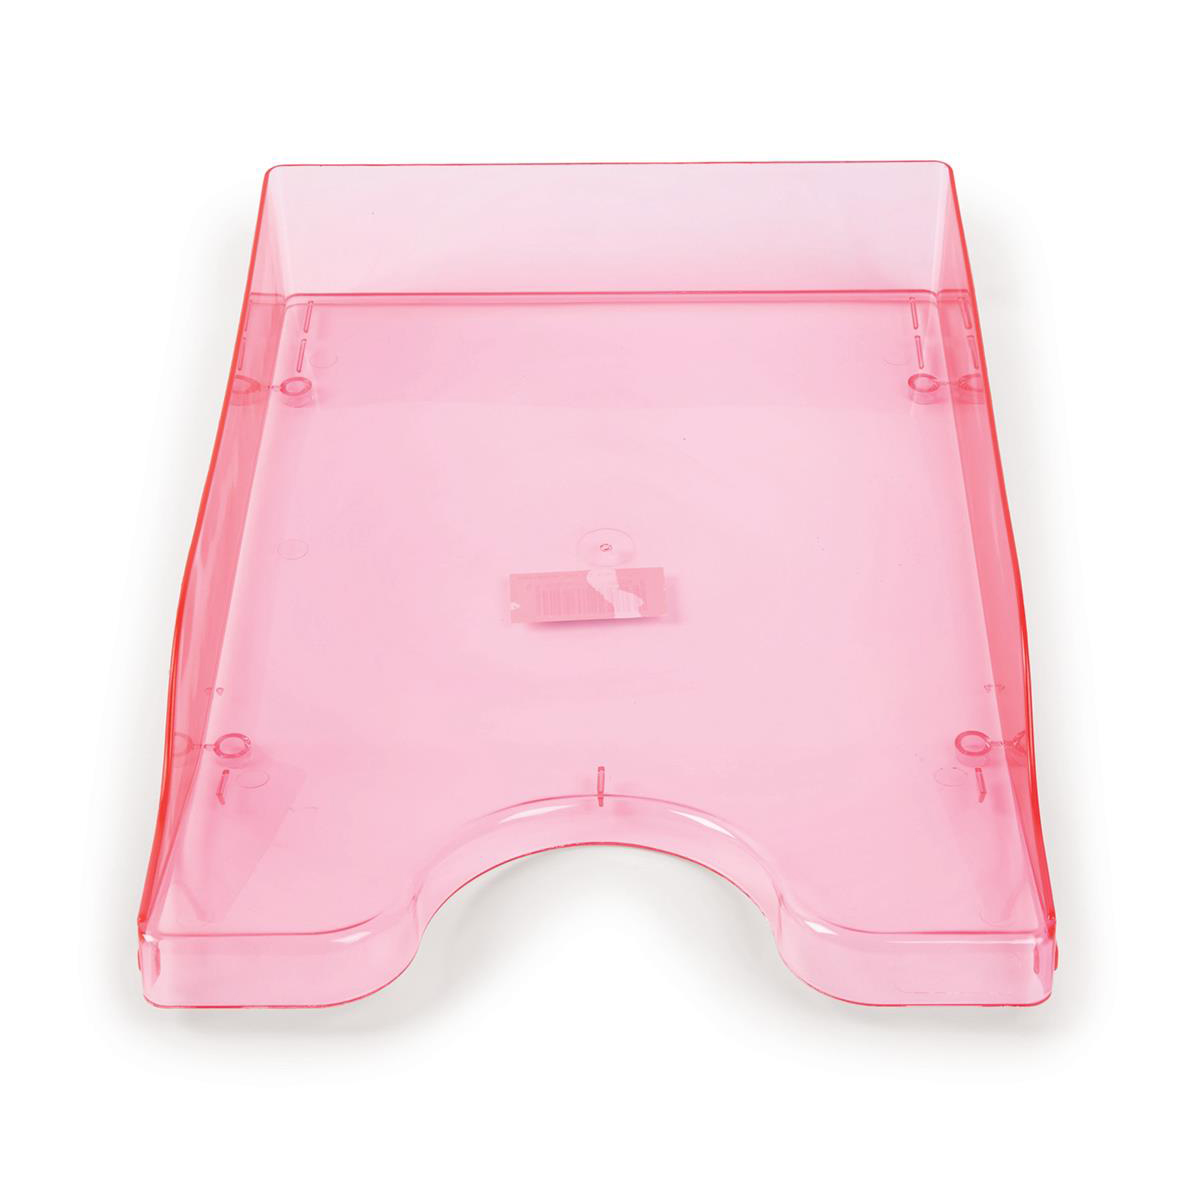 Continental Letter Tray Polystyrene for A4 Foolscap and Computer Printouts Ice Pink